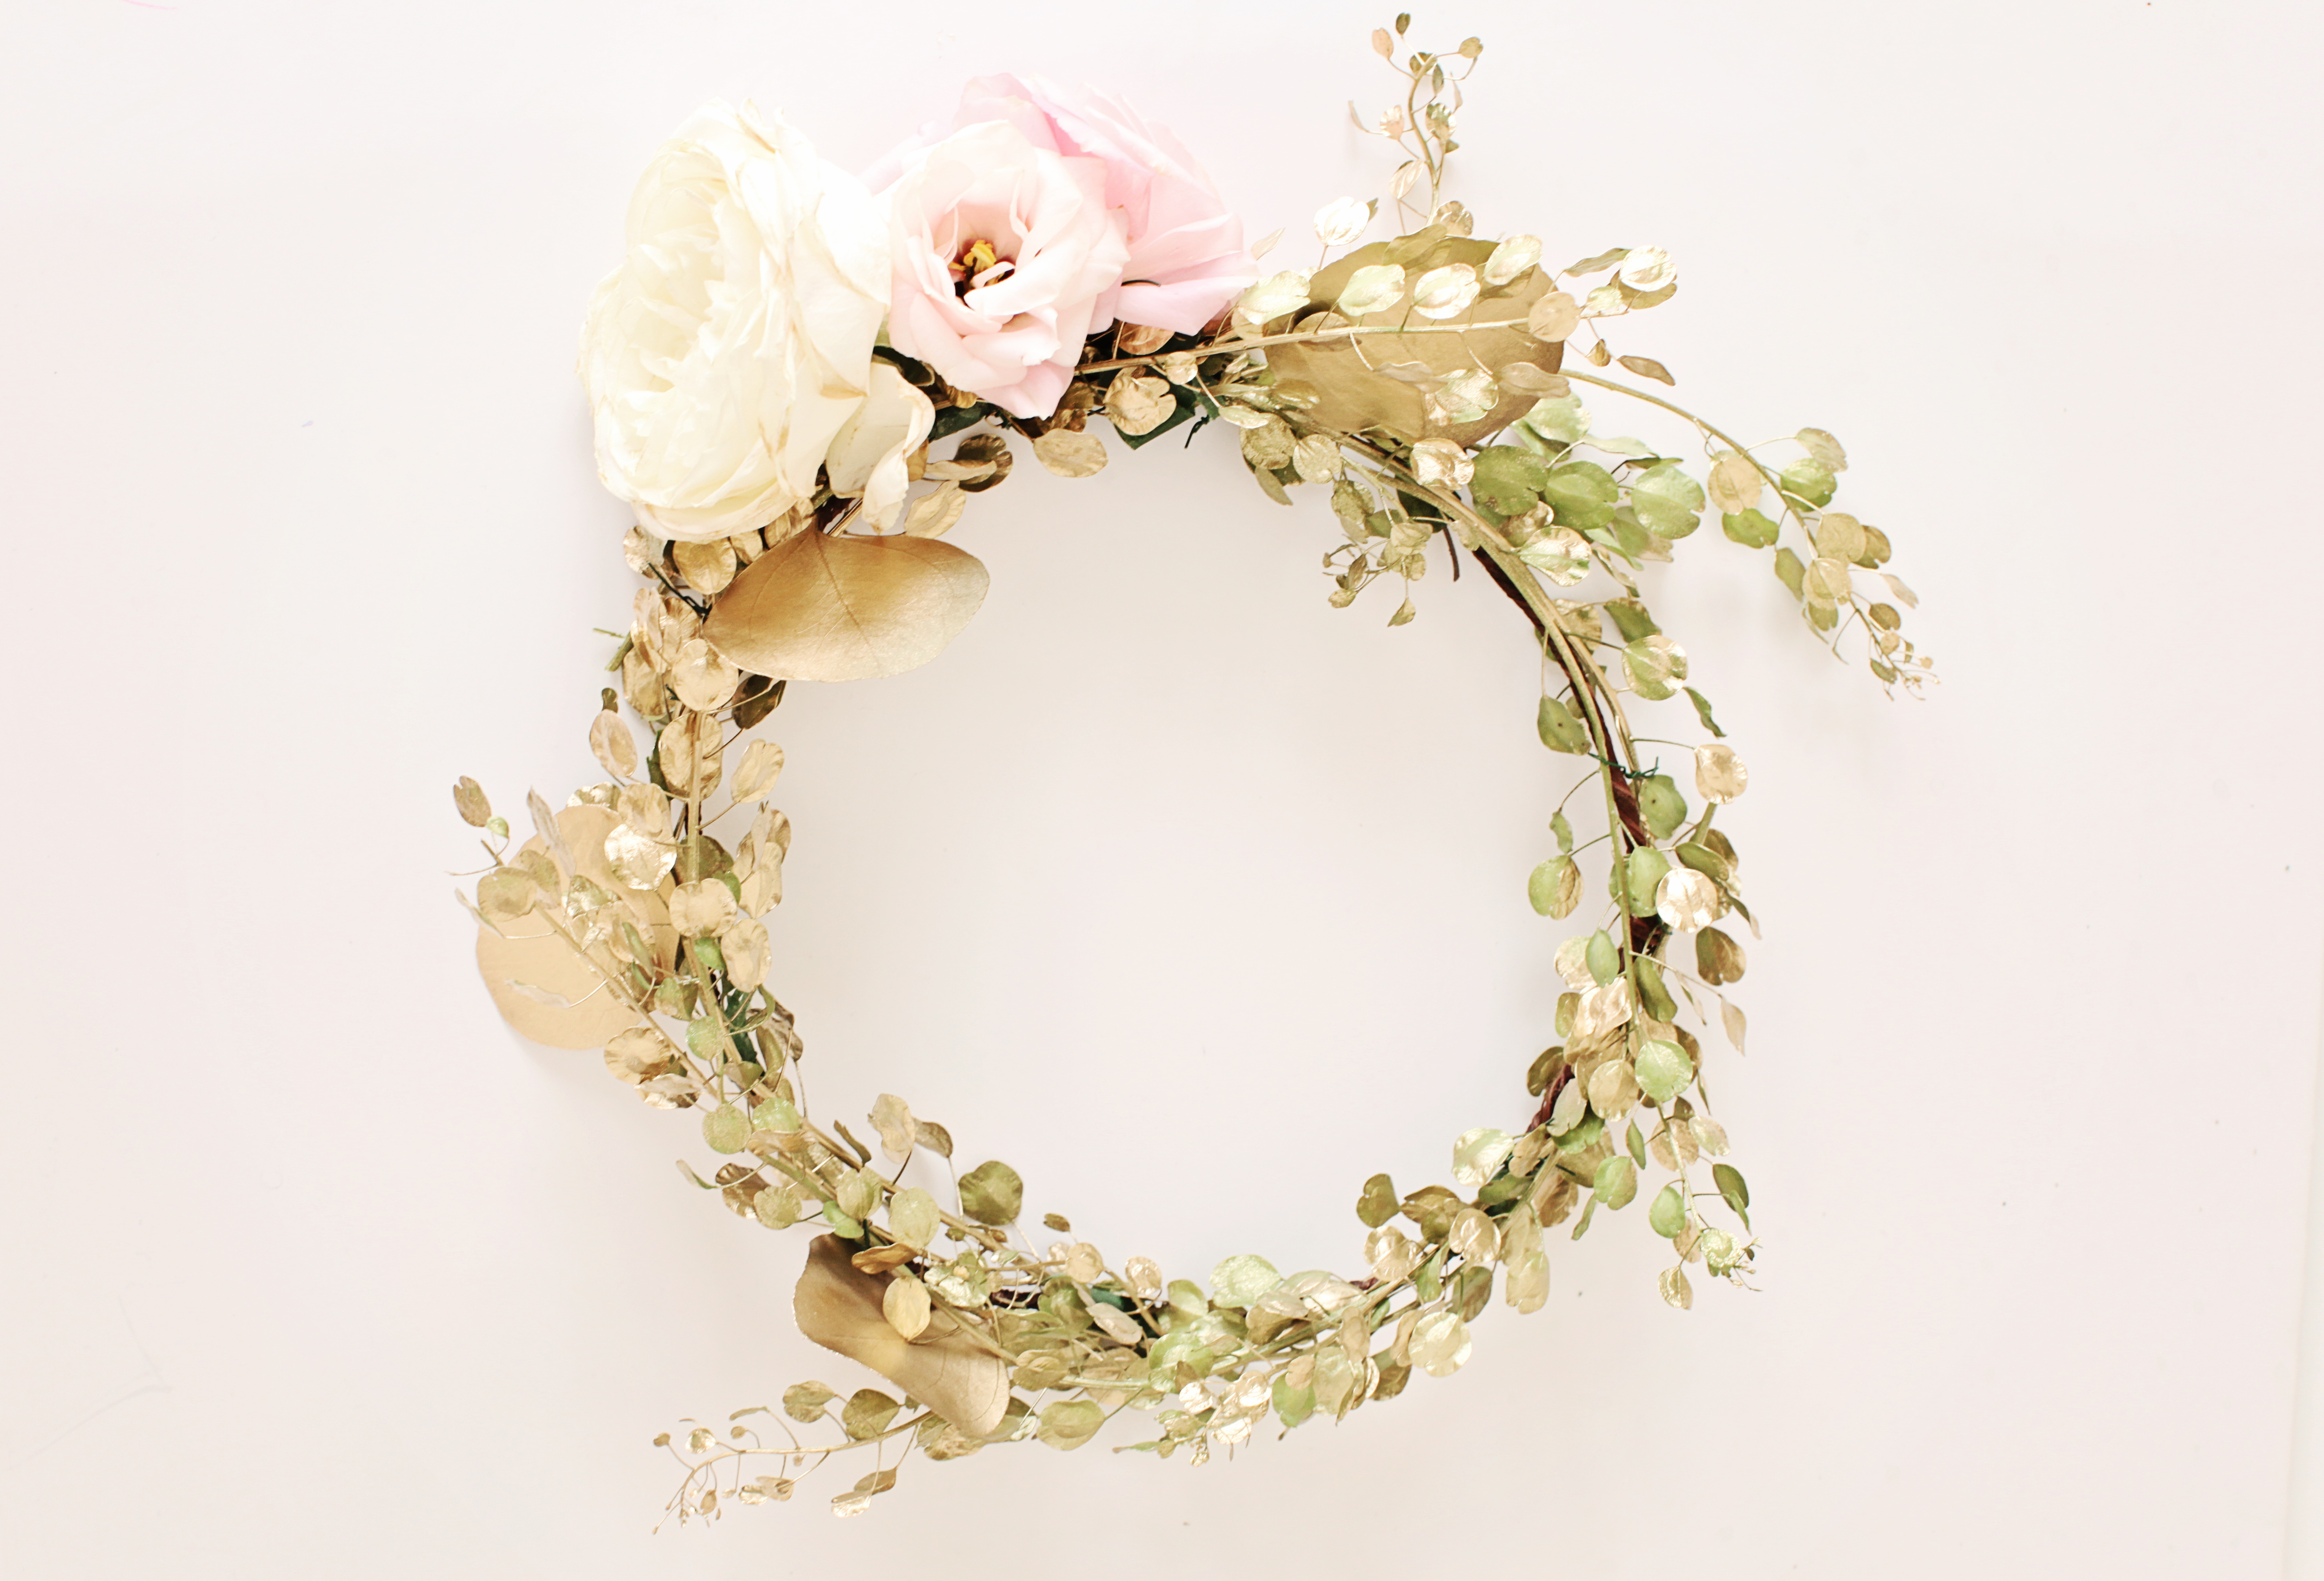 Diy gilded floral crown diy gold floral crown the days design ashley slater photography izmirmasajfo